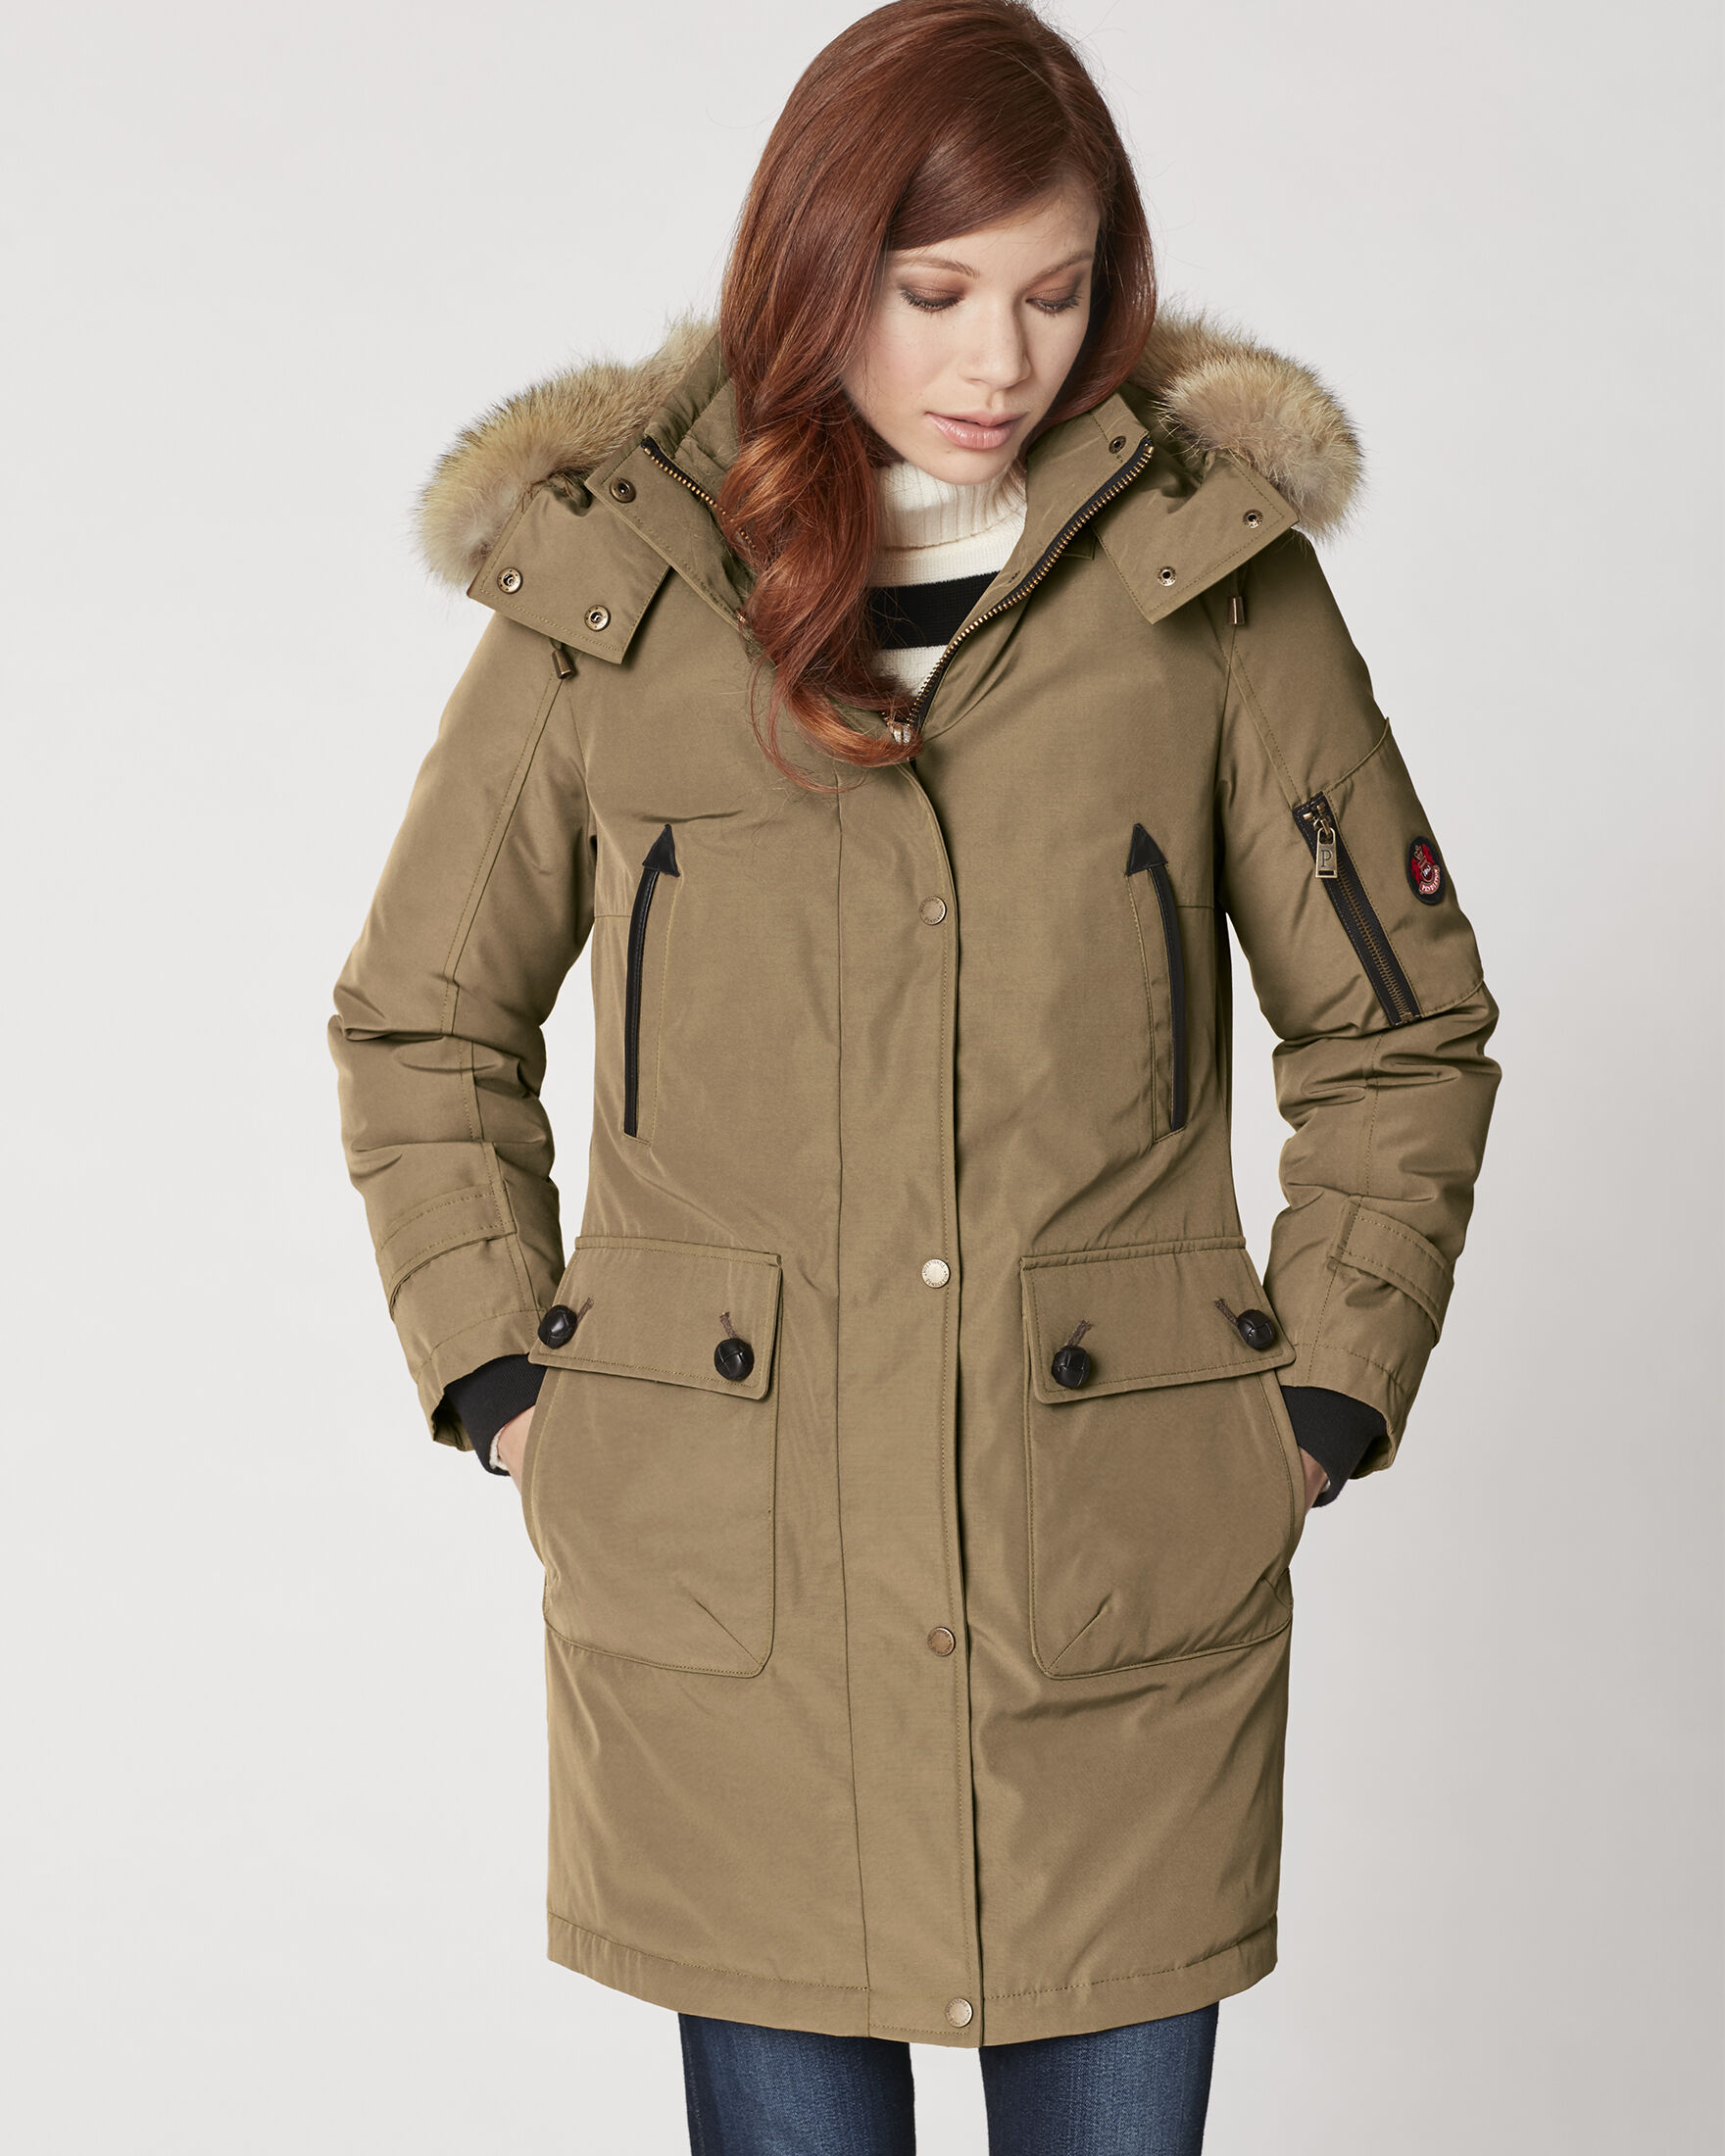 Parka vs down jacket